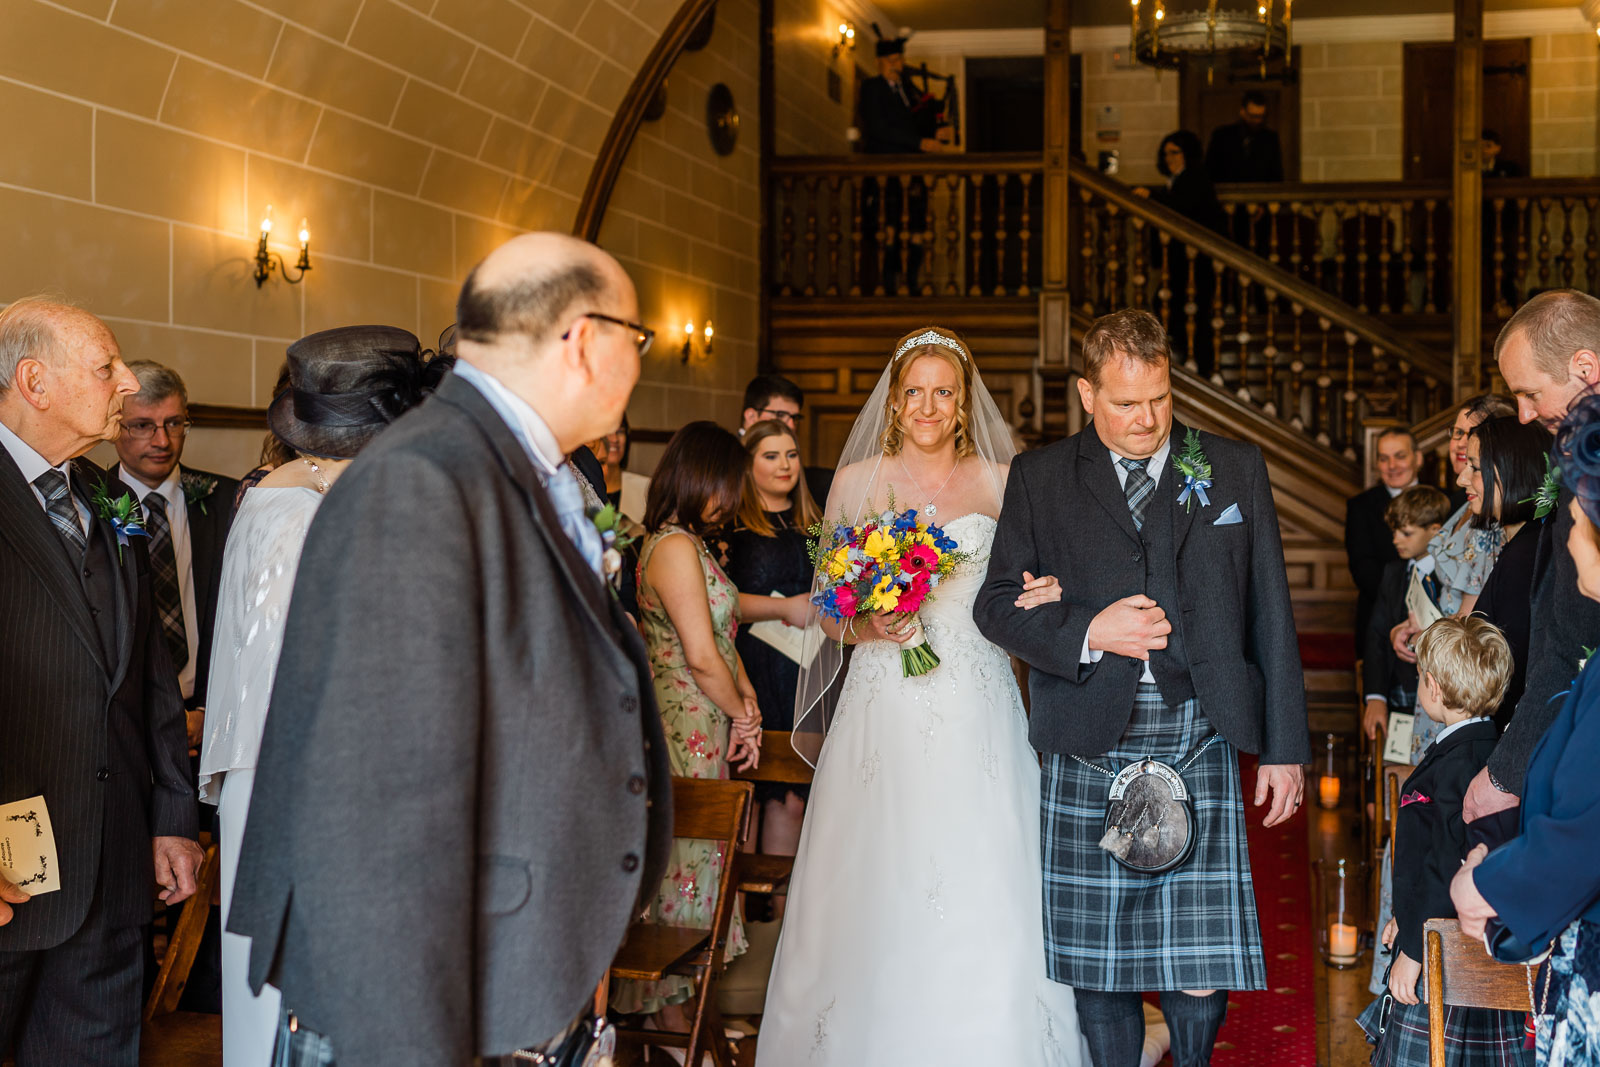 dalhousie_castle_wedding_edinburgh_dearlyphotography (99 of 371).jpg